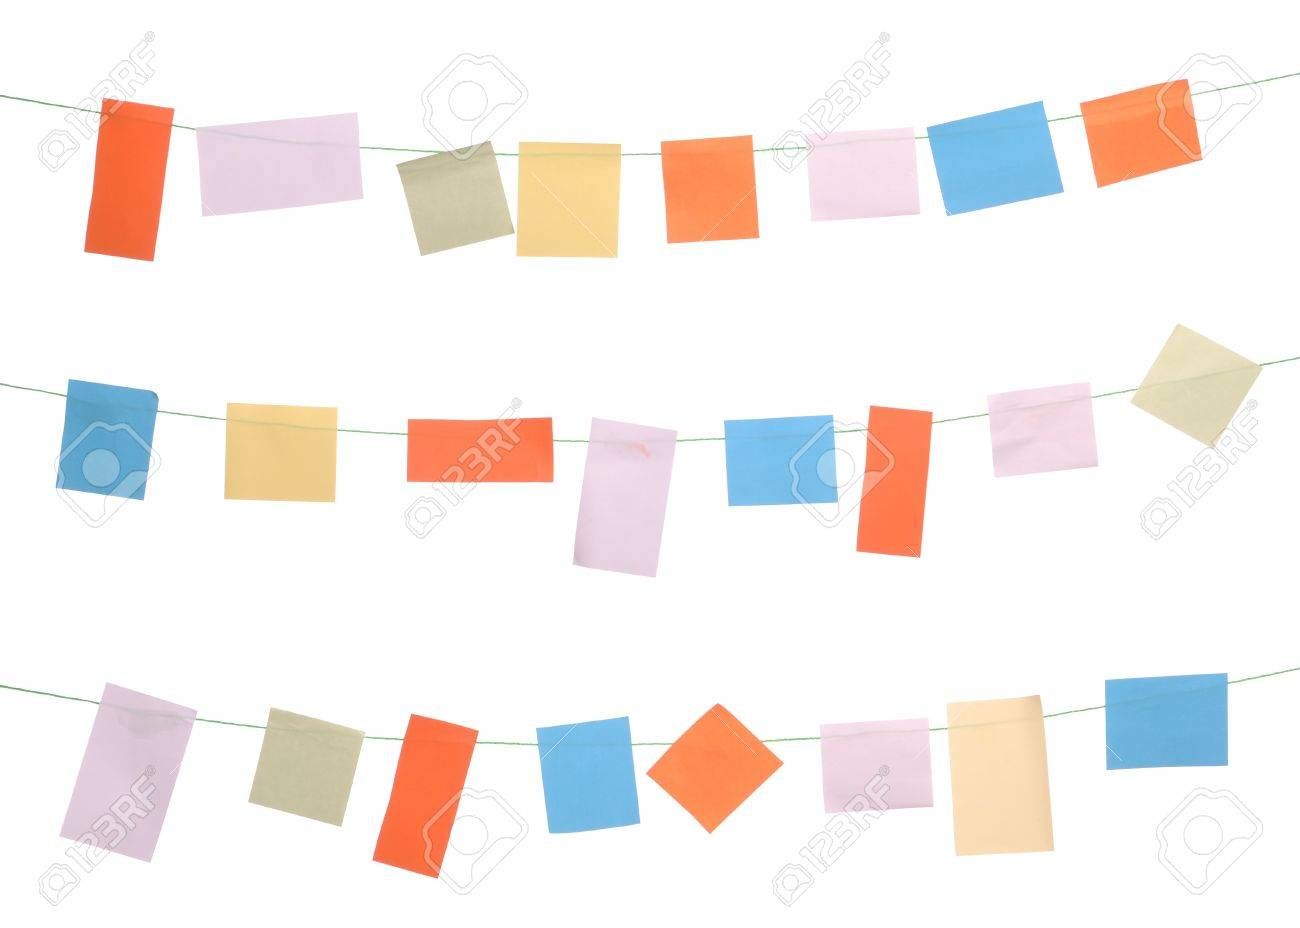 Hanging Pictures On Wire set of colored sticky notes hanging on wire (isolated on white